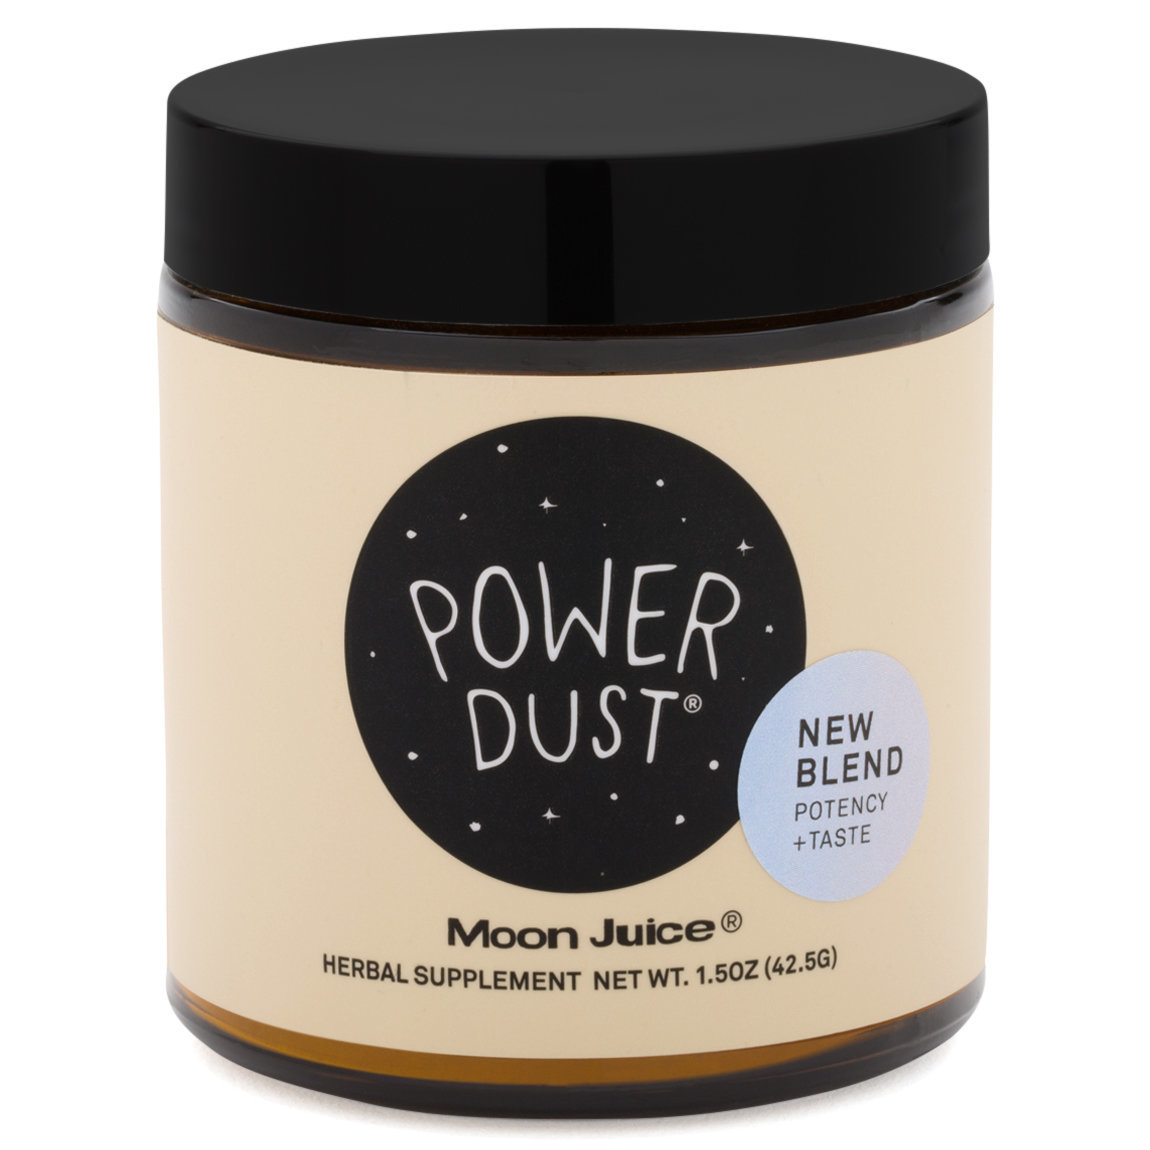 Moon Juice Power Dust product smear.